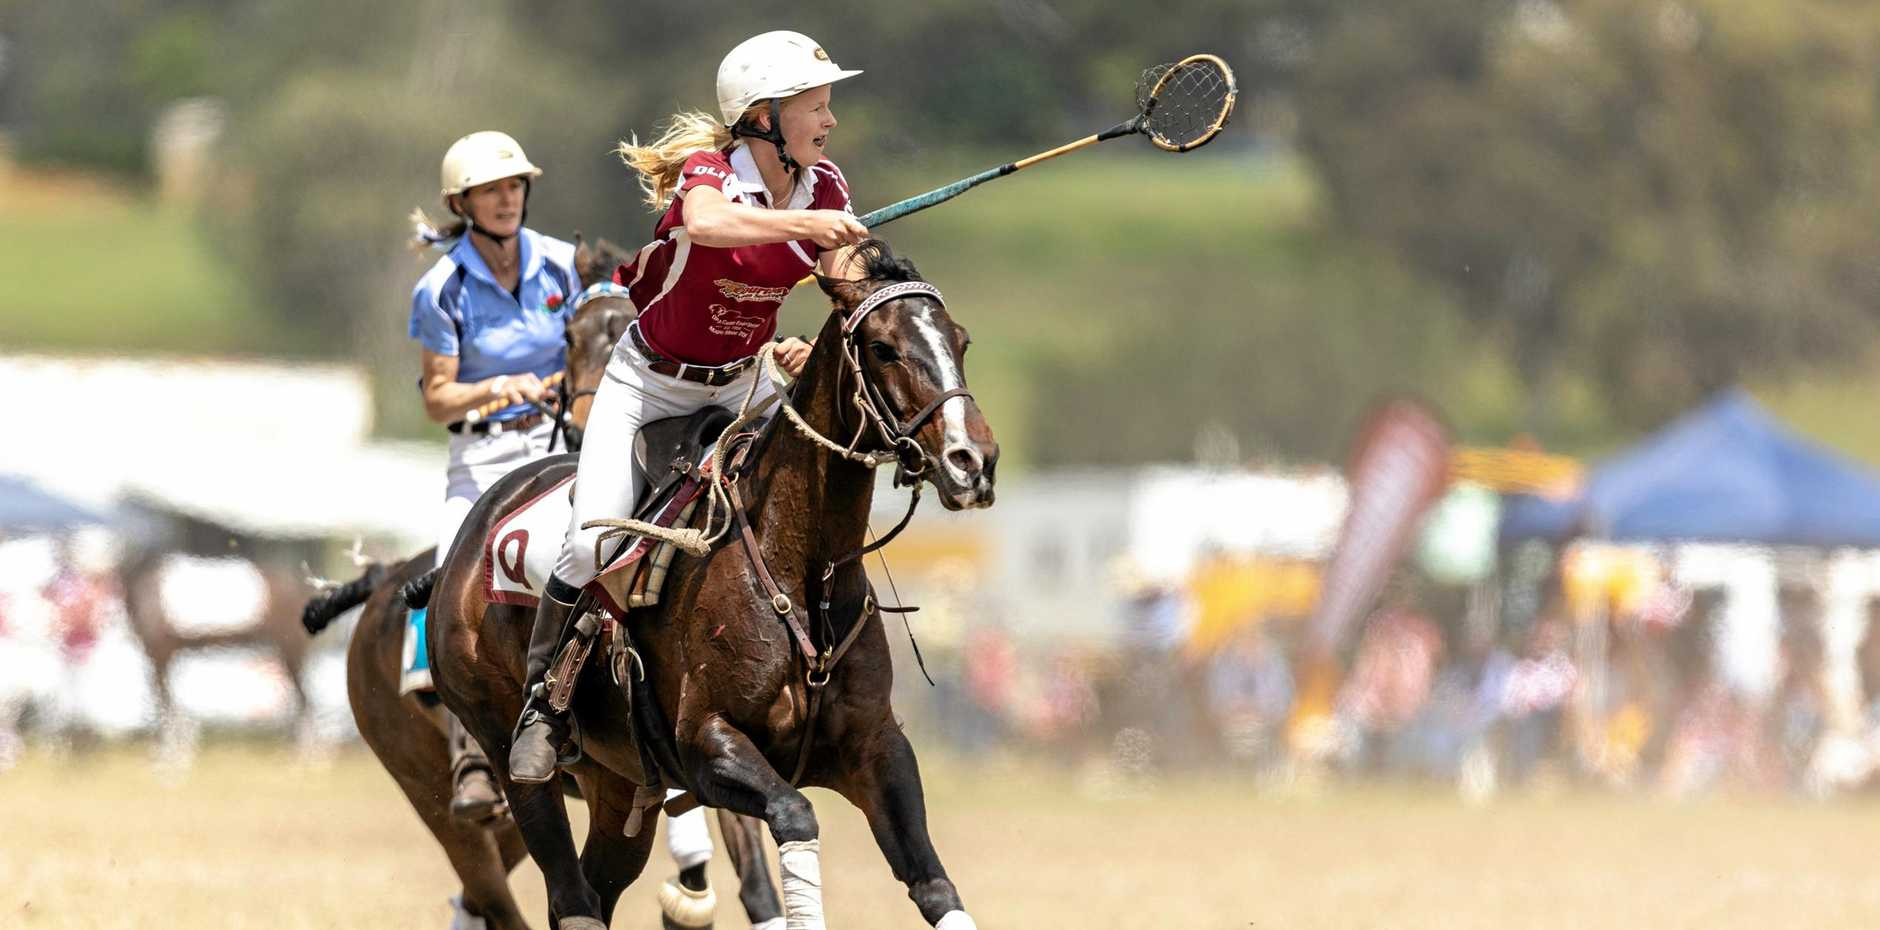 WORLD CUP BOUND: Beth Hafey competing for Queensland at the national championships.